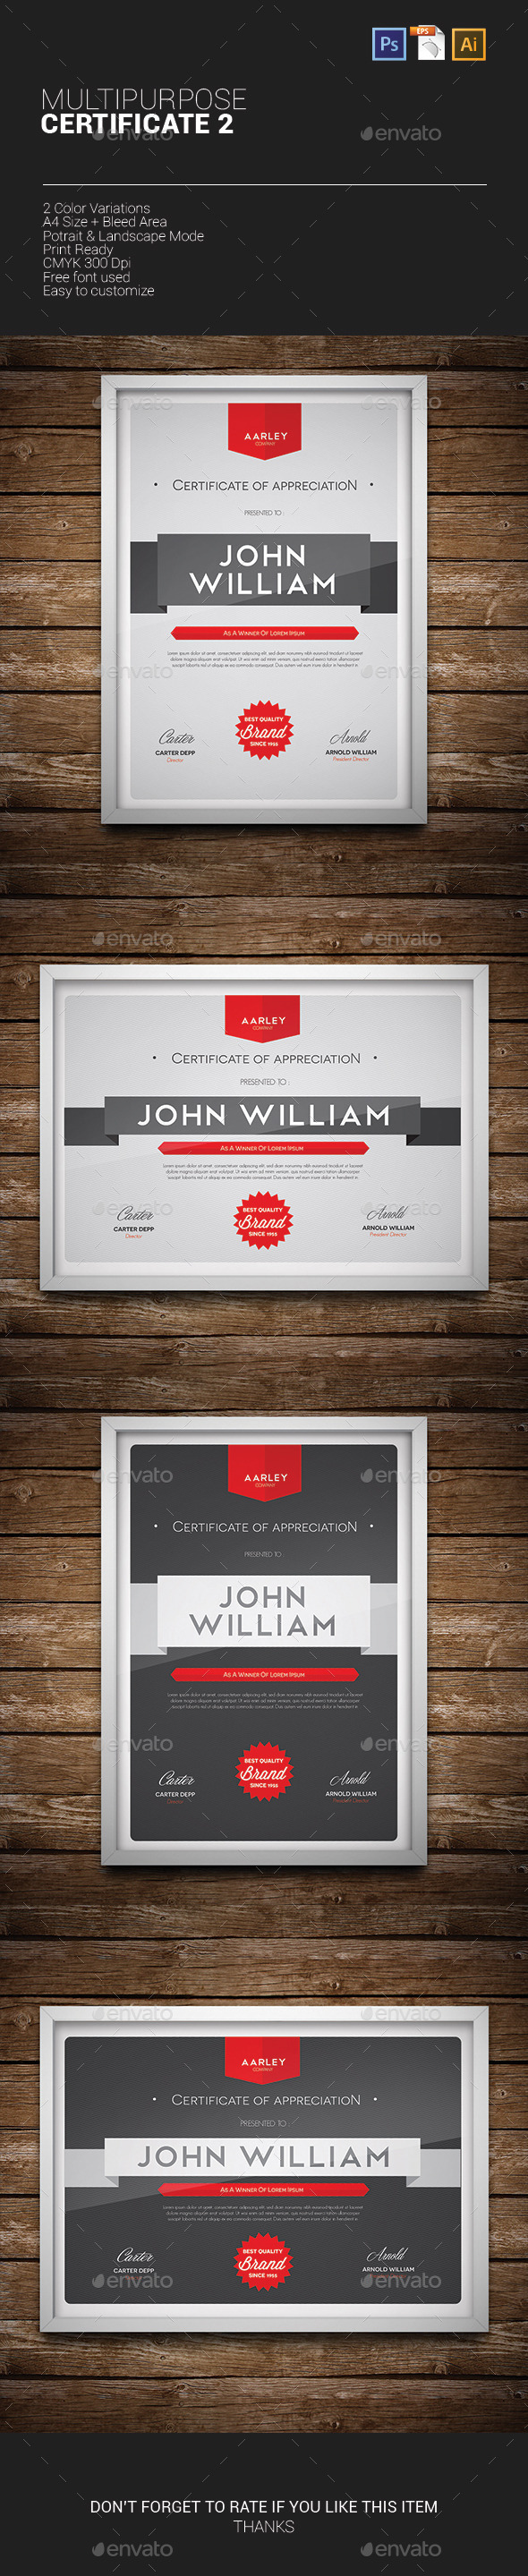 GraphicRiver Multipurpose Certificate 02 10013588